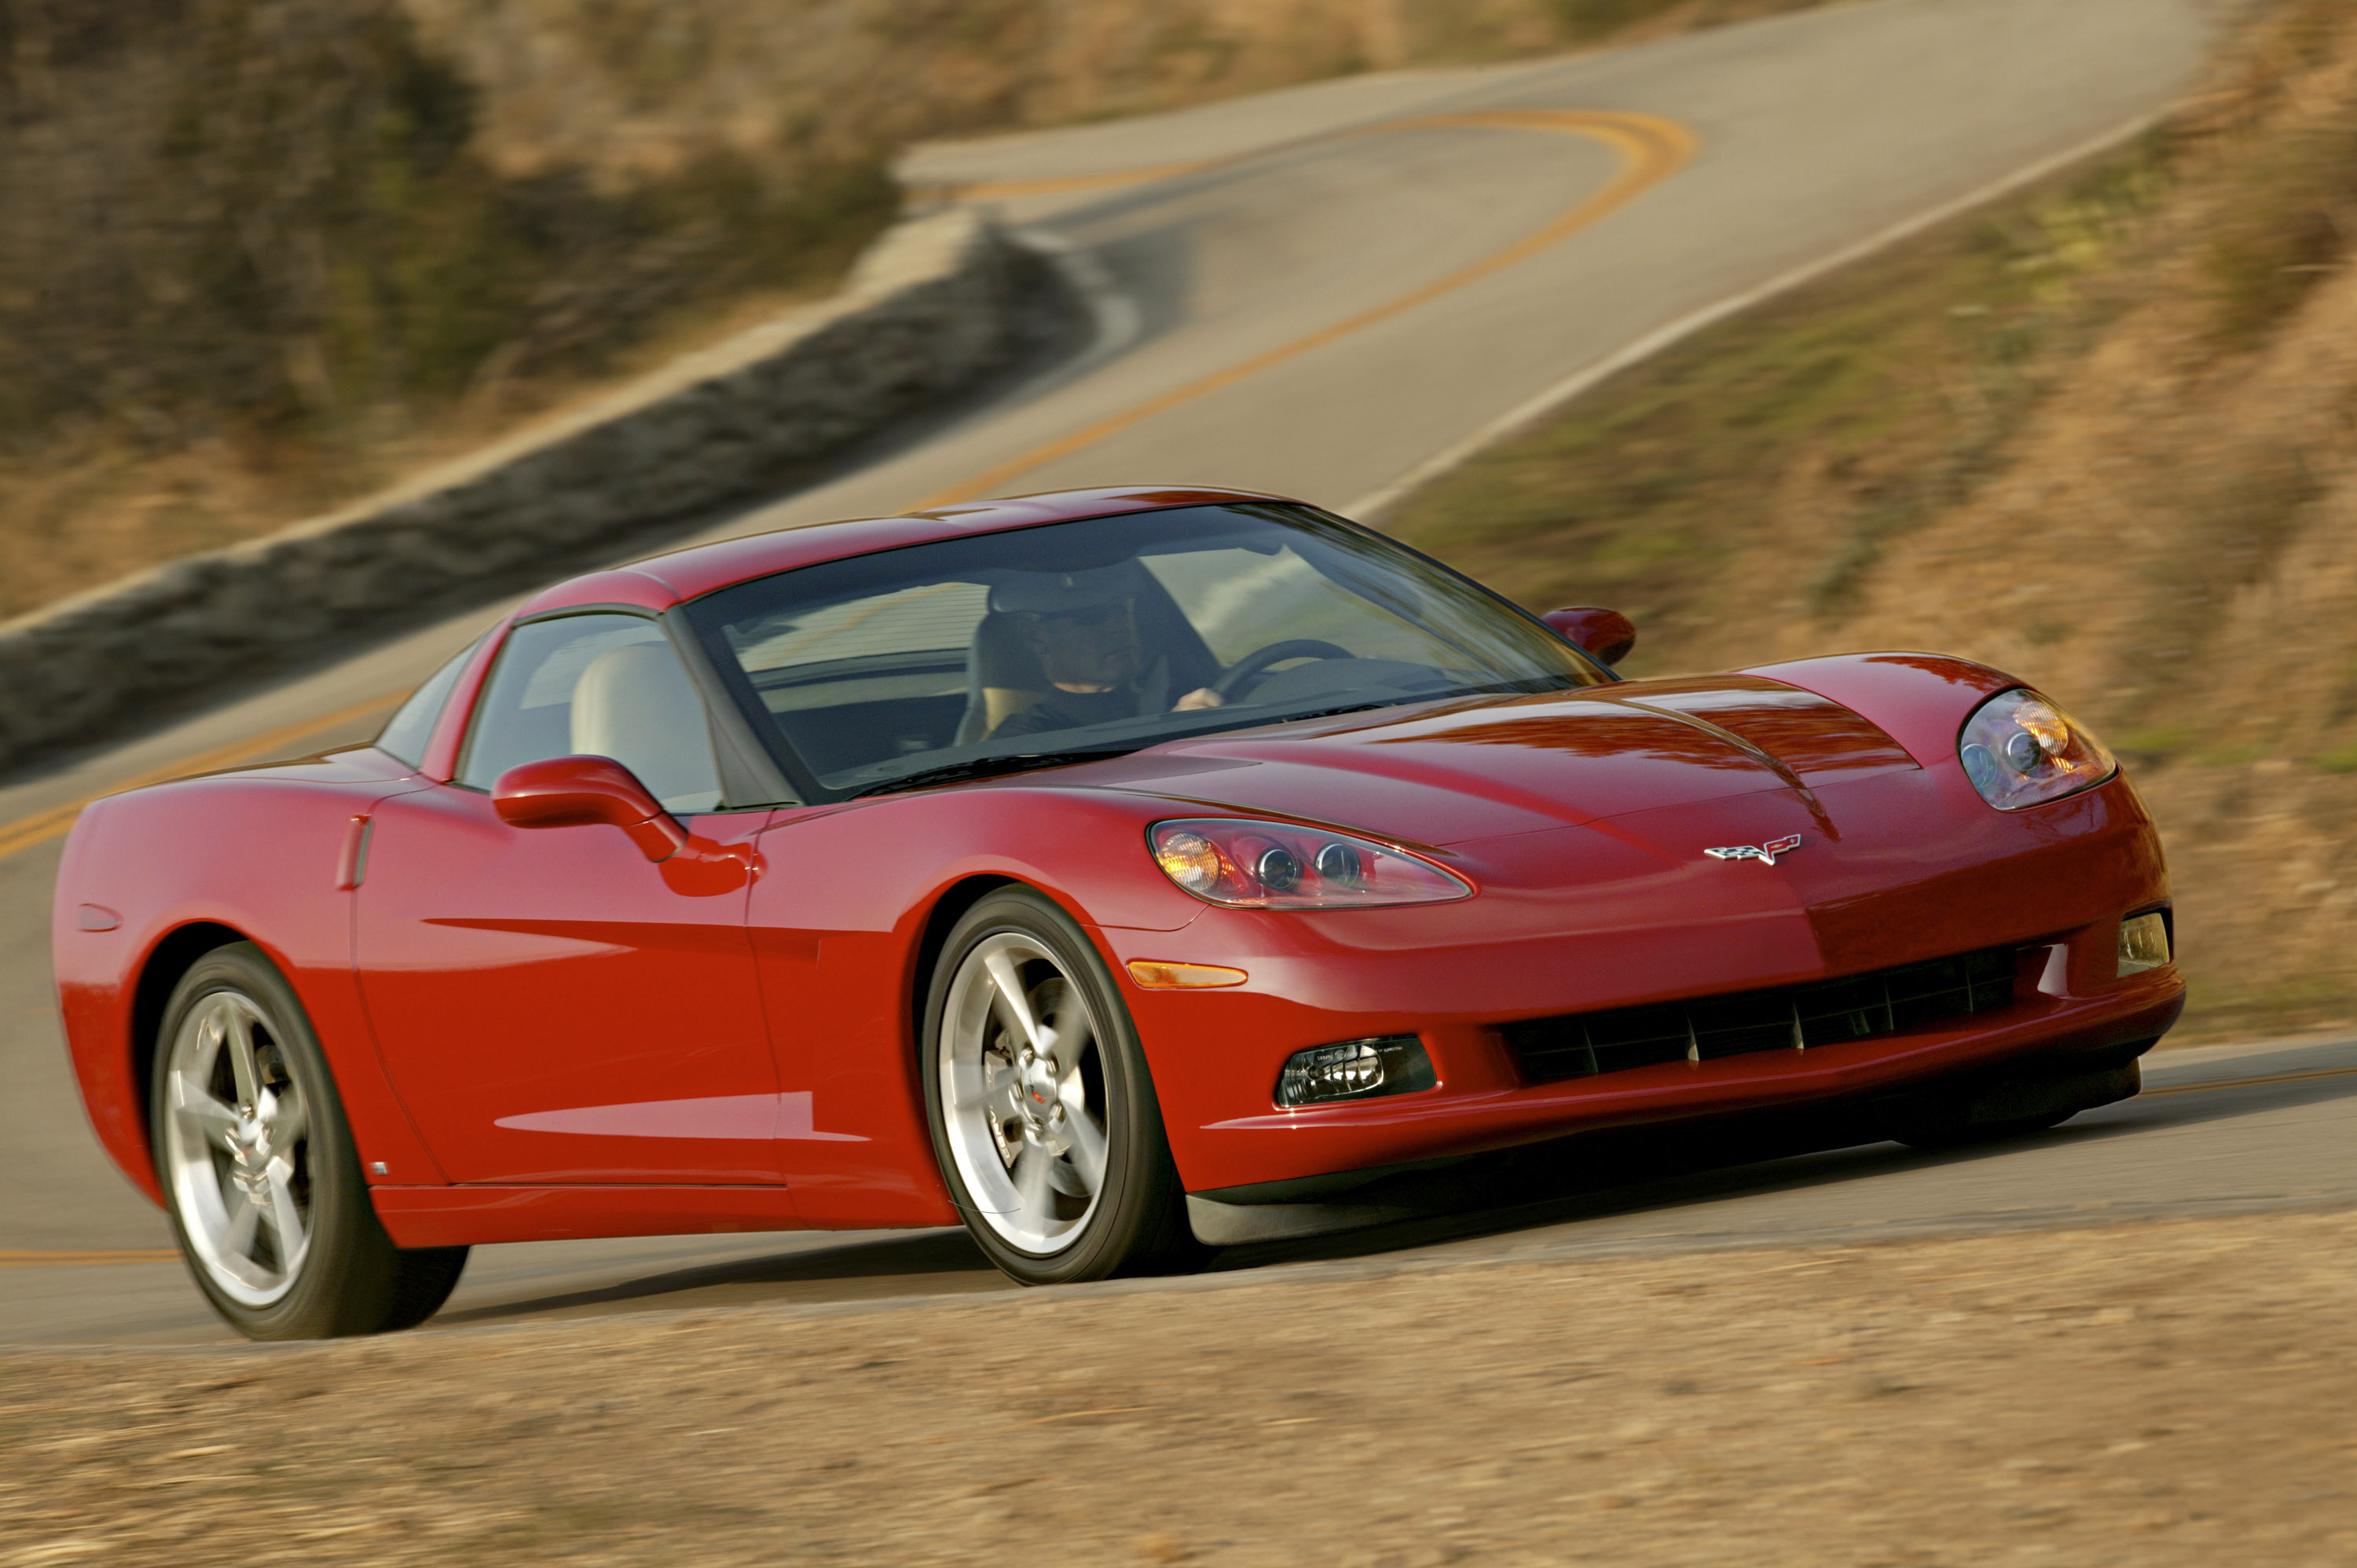 2007 chevrolet corvette c6 coupe pictures information and specs auto. Black Bedroom Furniture Sets. Home Design Ideas